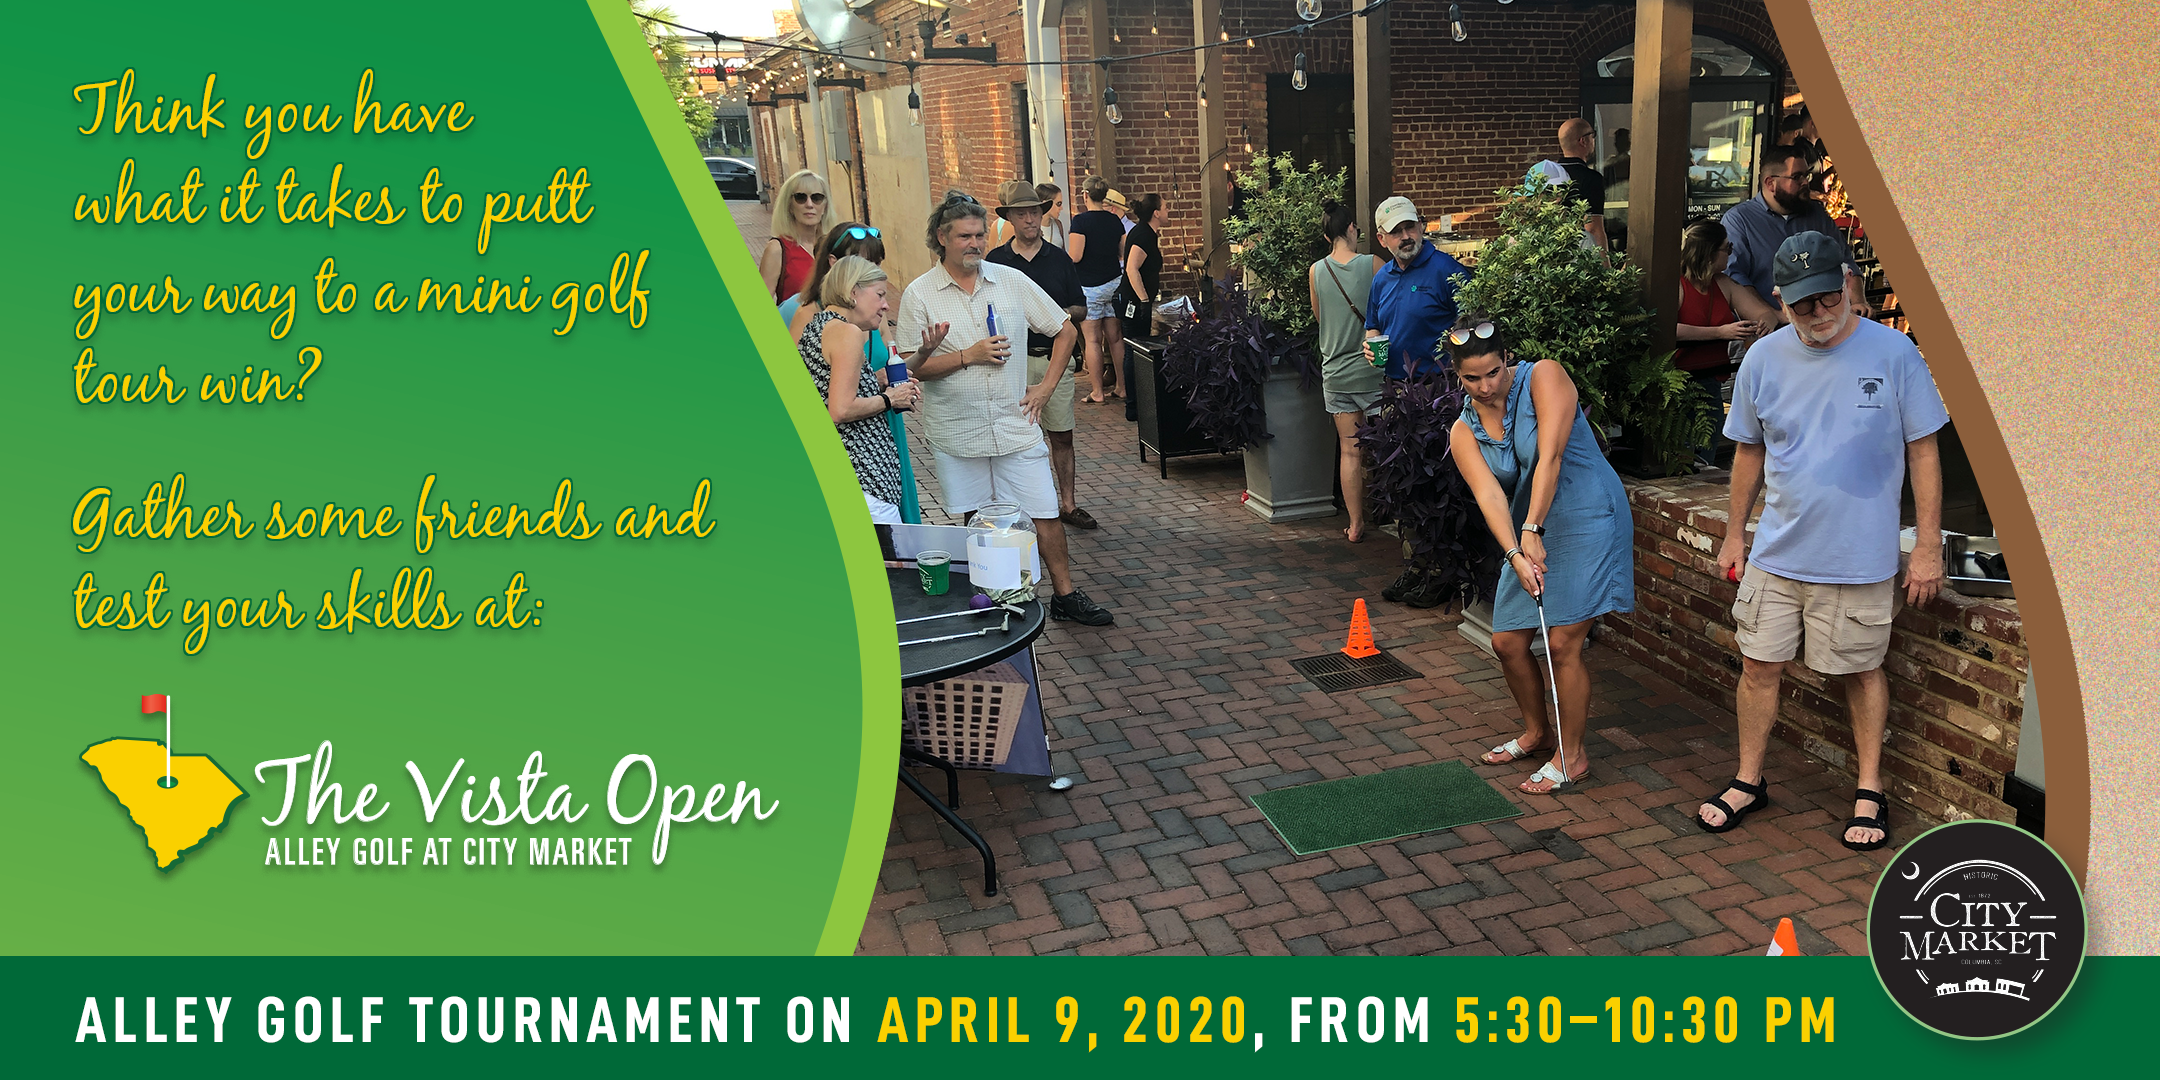 Vista Open - Alley Golf at City Market Tournament Registration